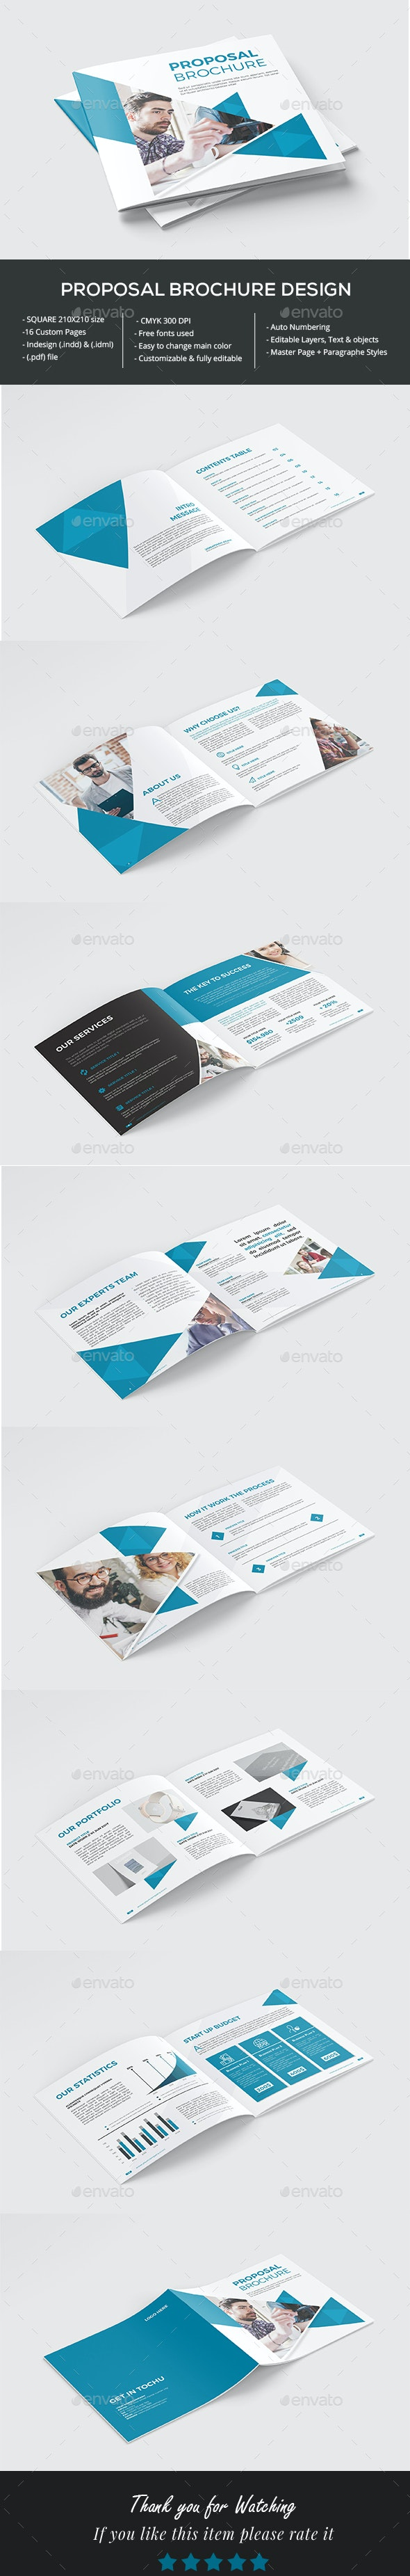 Proposal Brochure - Brochures Print Templates